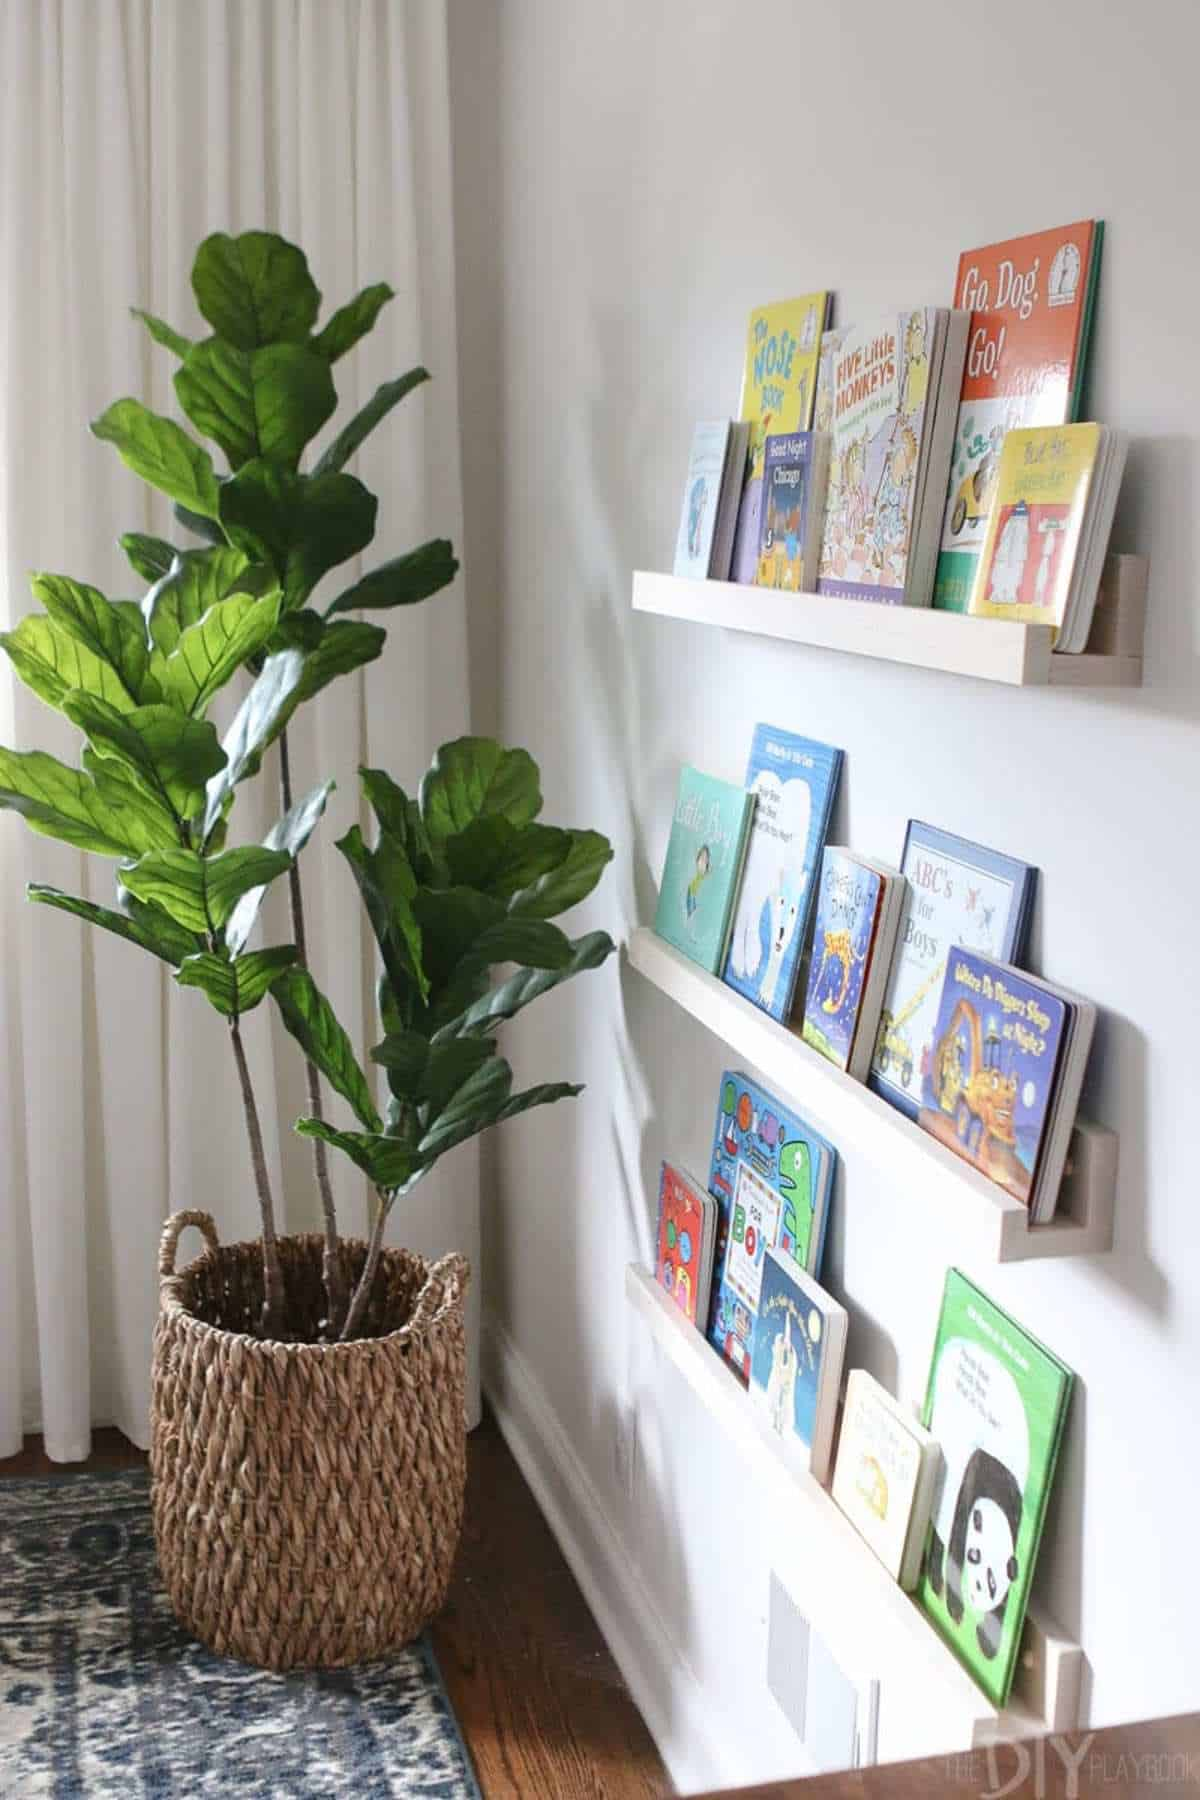 Book Ledges to Display Covers